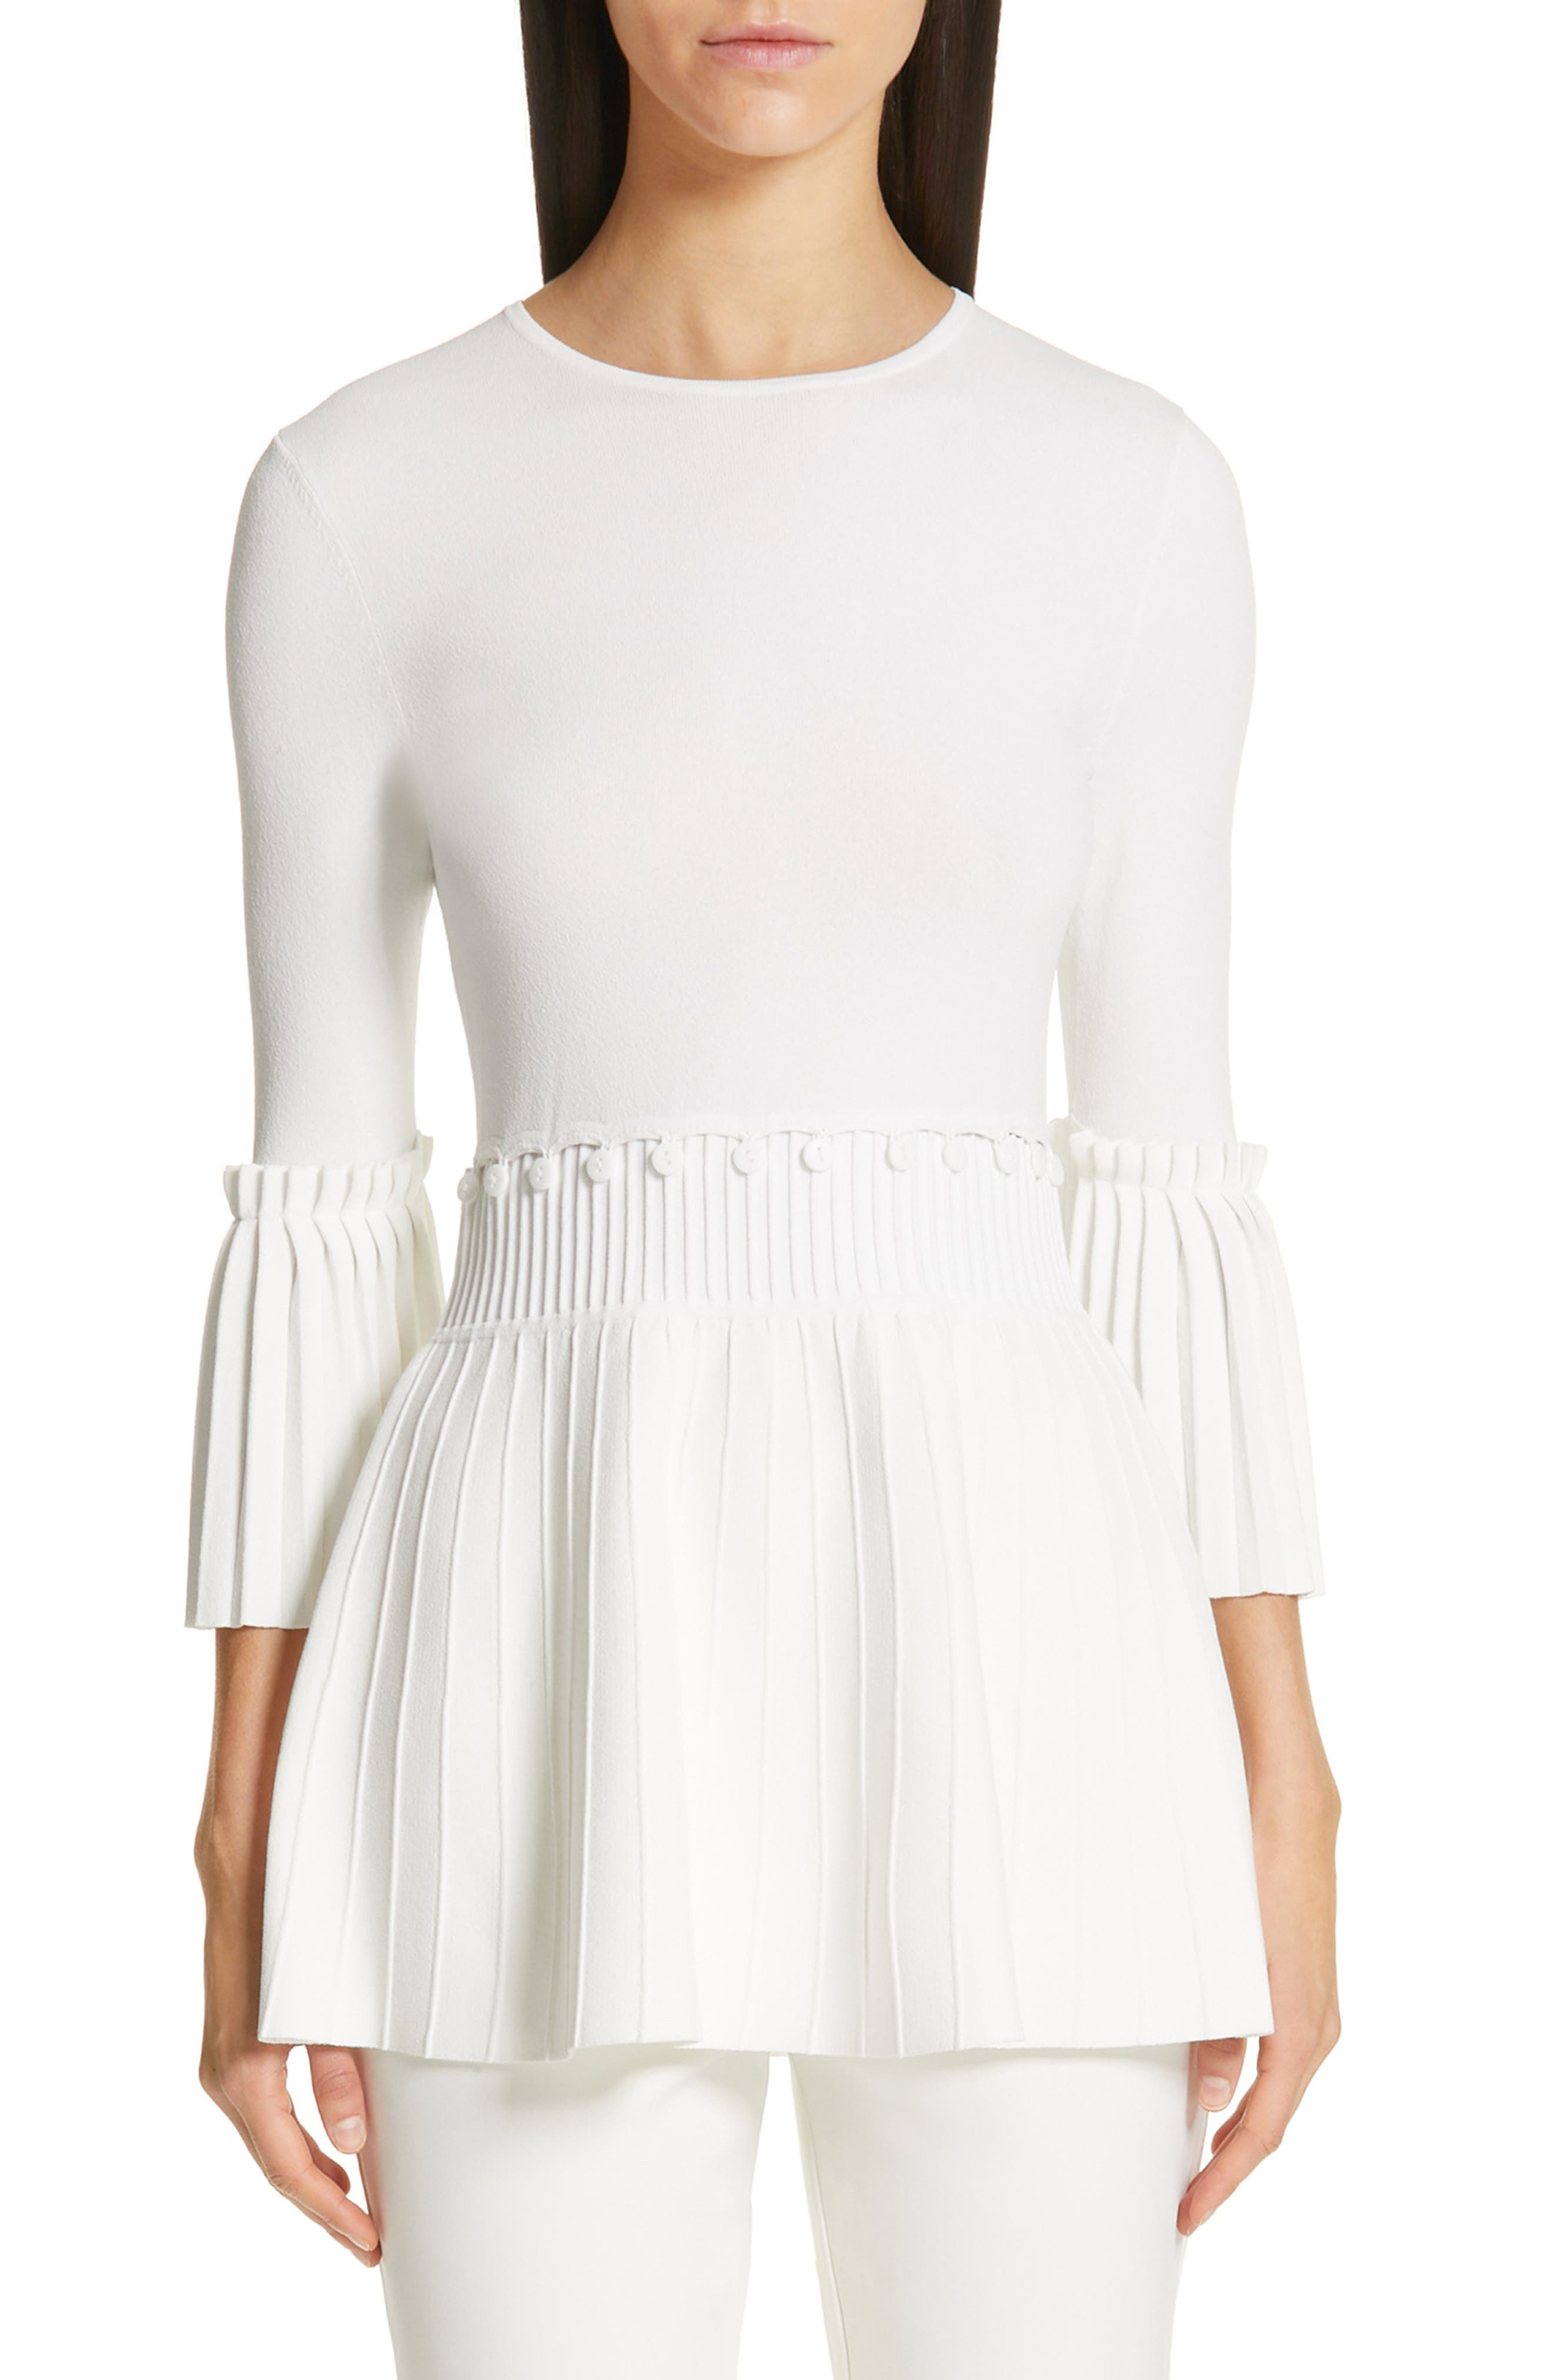 LELA ROSE Pleated Knit Top, Main, color, WHITE